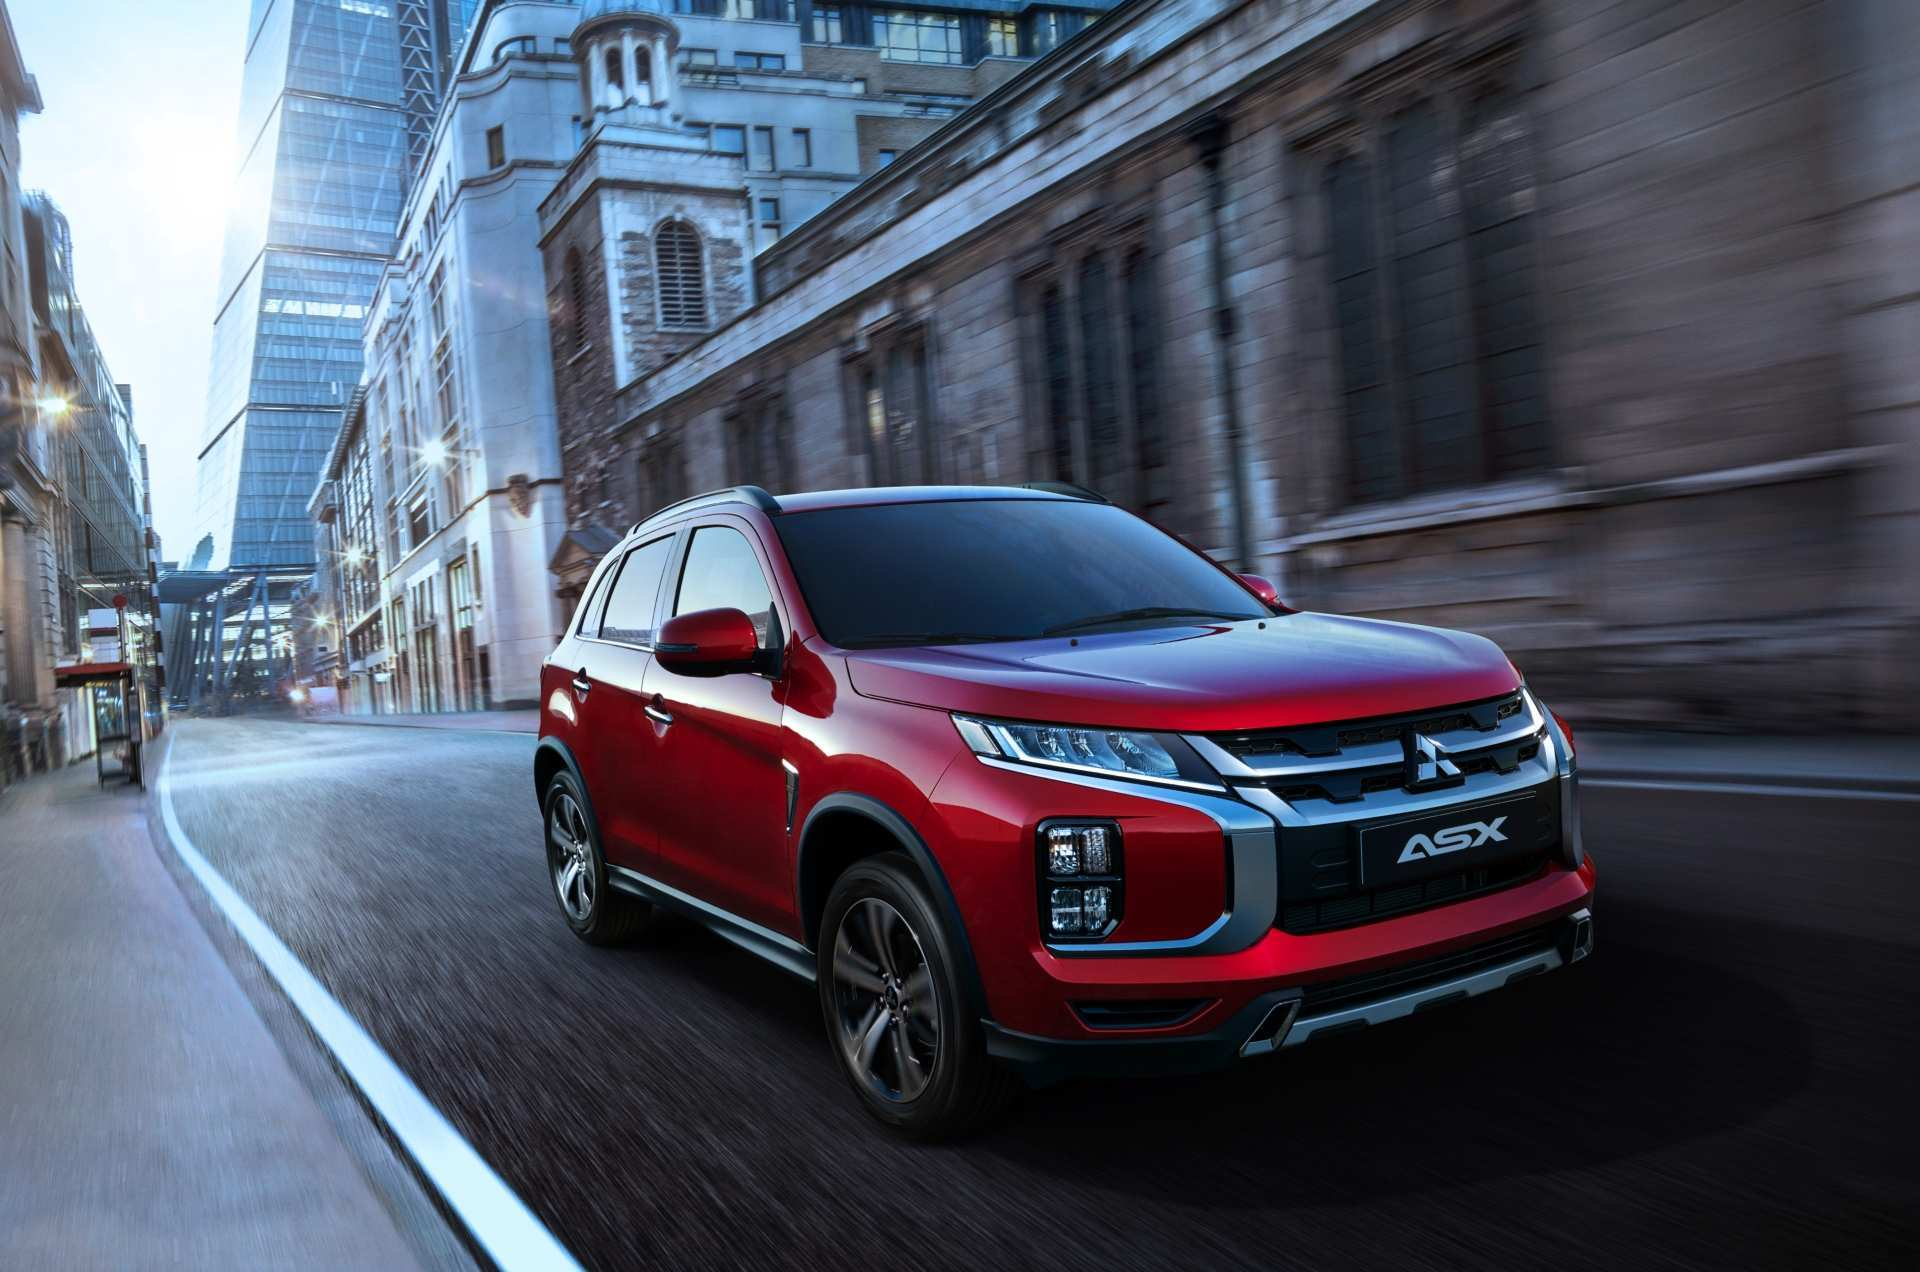 34 All New Mitsubishi Asx 2020 Wymiary Price for Mitsubishi Asx 2020 Wymiary